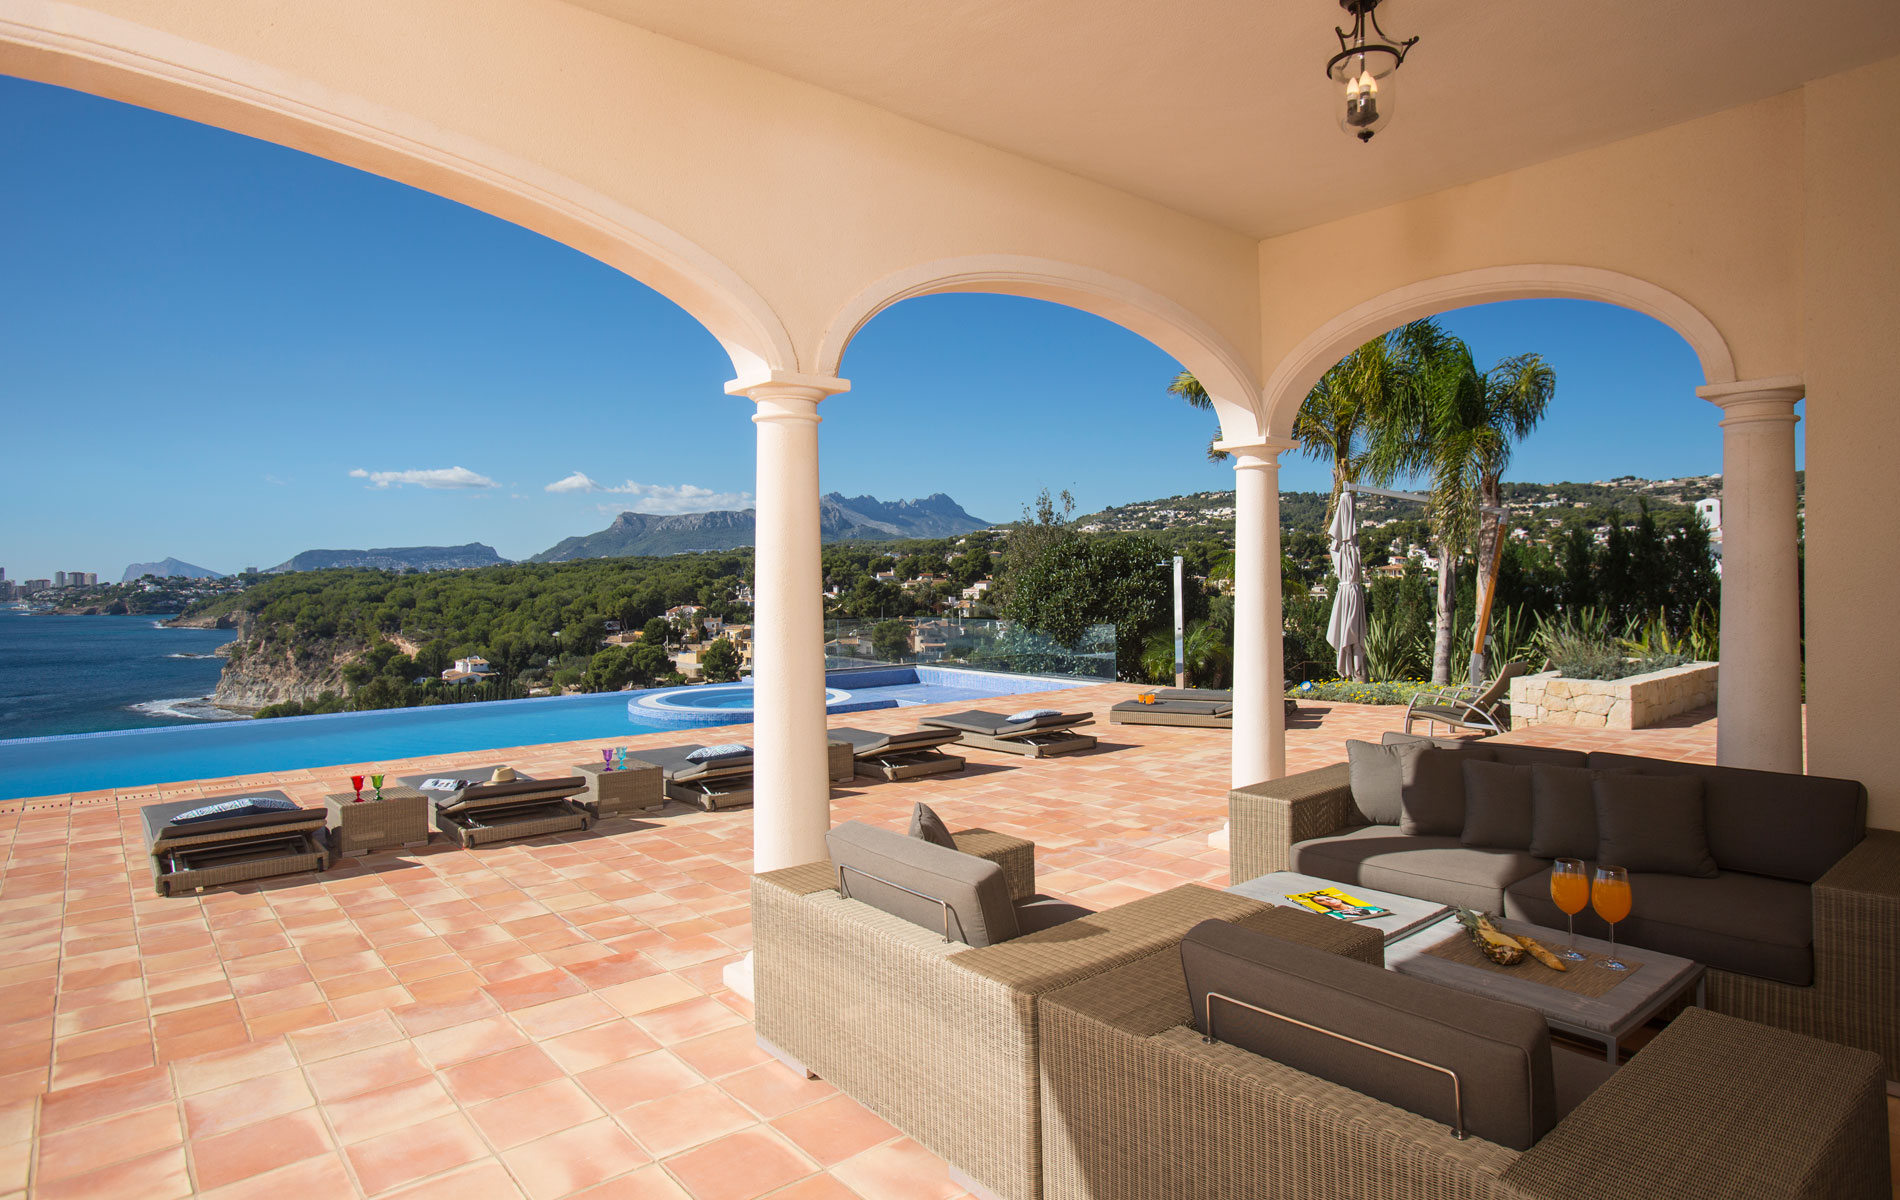 Spain sun terrace area with swimming pool and sea views